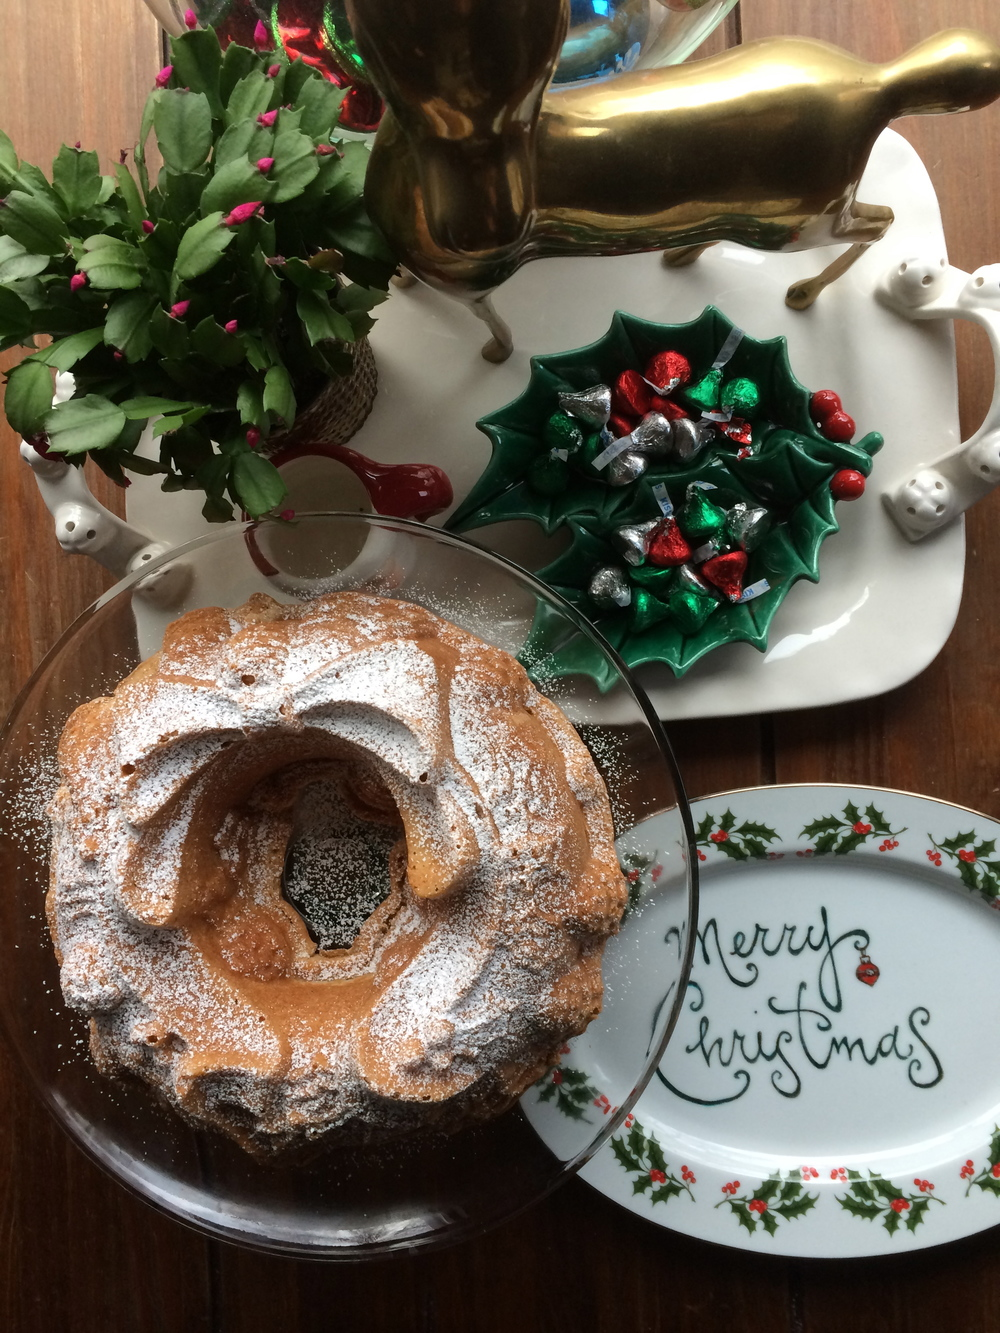 Christmas isn't Christmas without a bundt cake.